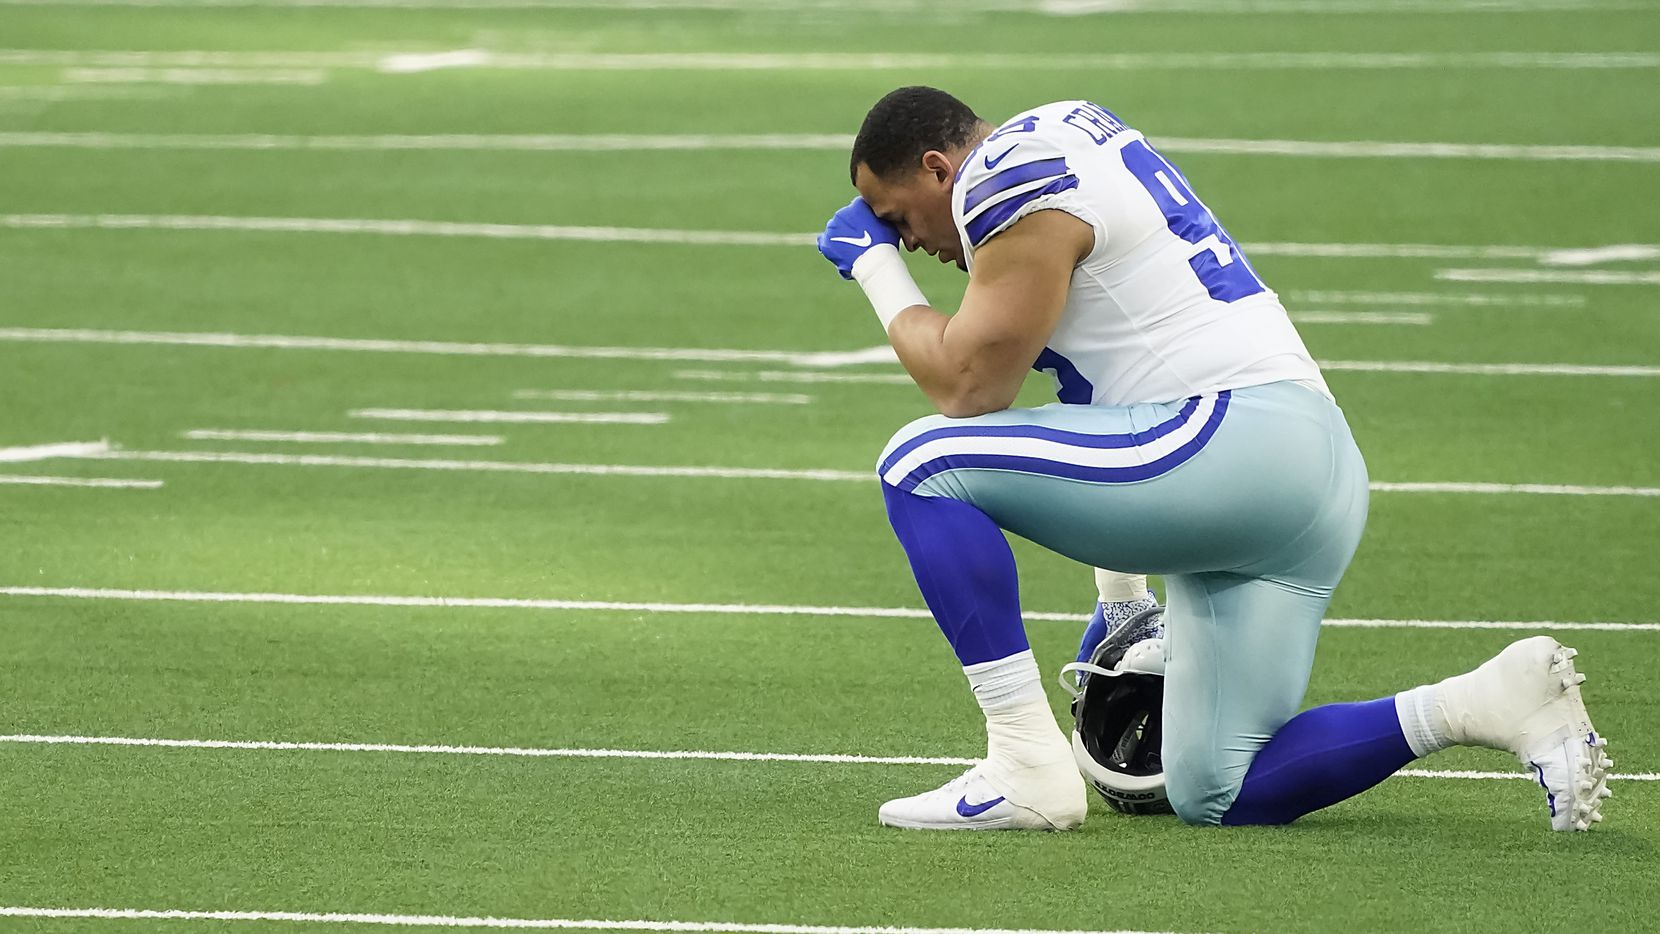 Dallas Cowboys defensive tackle Tyrone Crawford kneels in prayer before facing the Philadelphia Eagles in an NFL football game at AT&T Stadium on Sunday, Dec. 27, 2020, in Arlington.